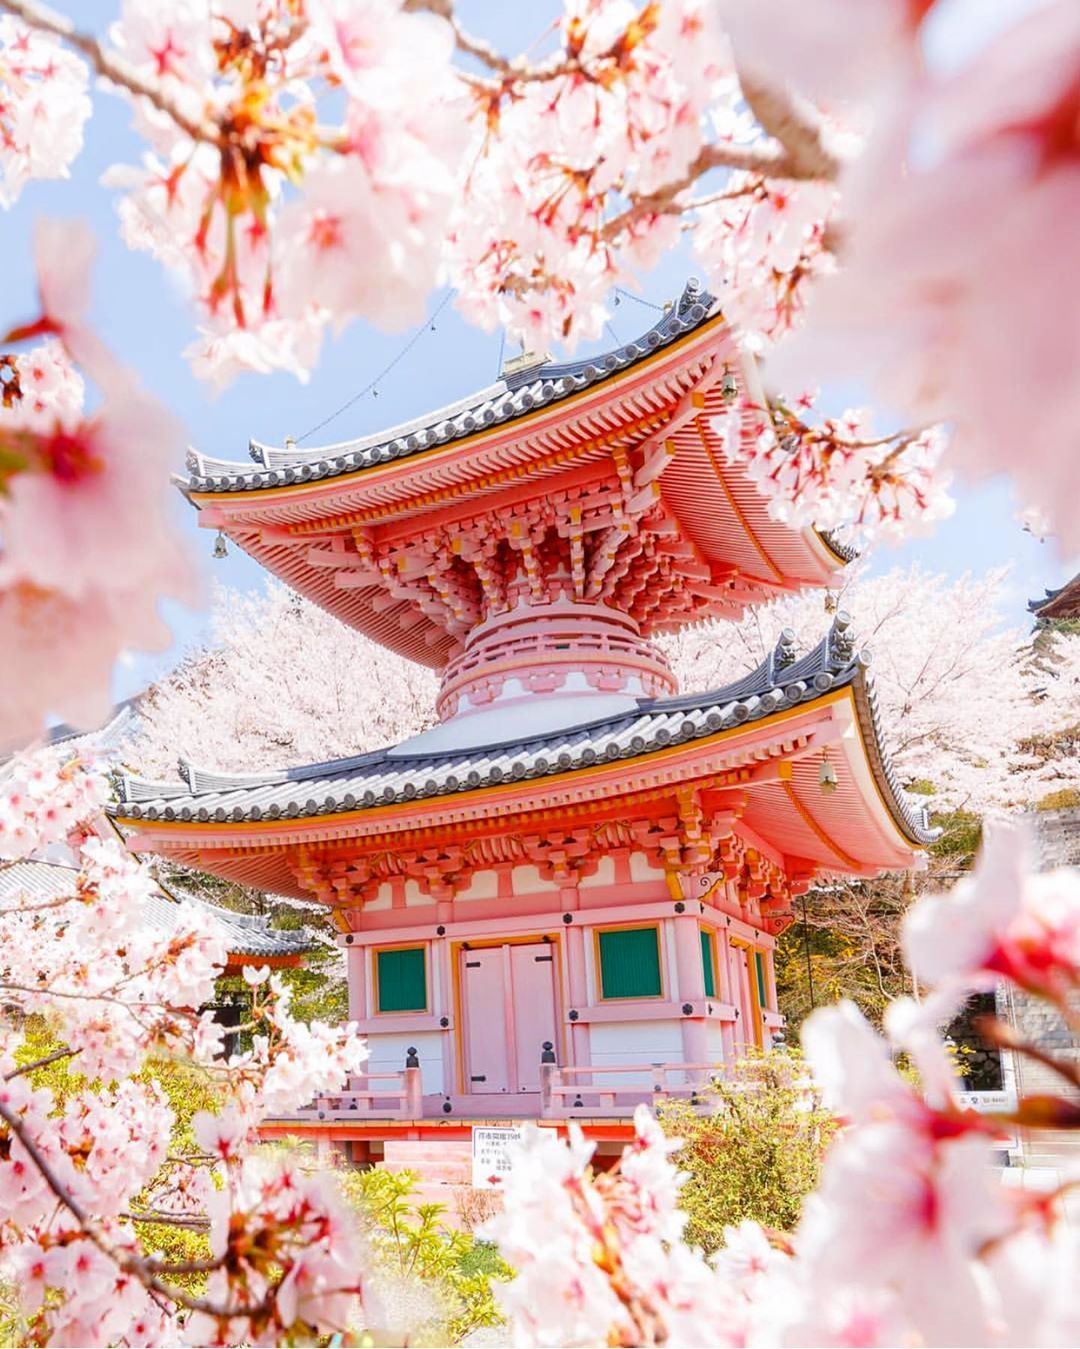 Travel Insurance Options For Traveling Abroad In 2020 Japan Photo Japanese Temple Explore Japan